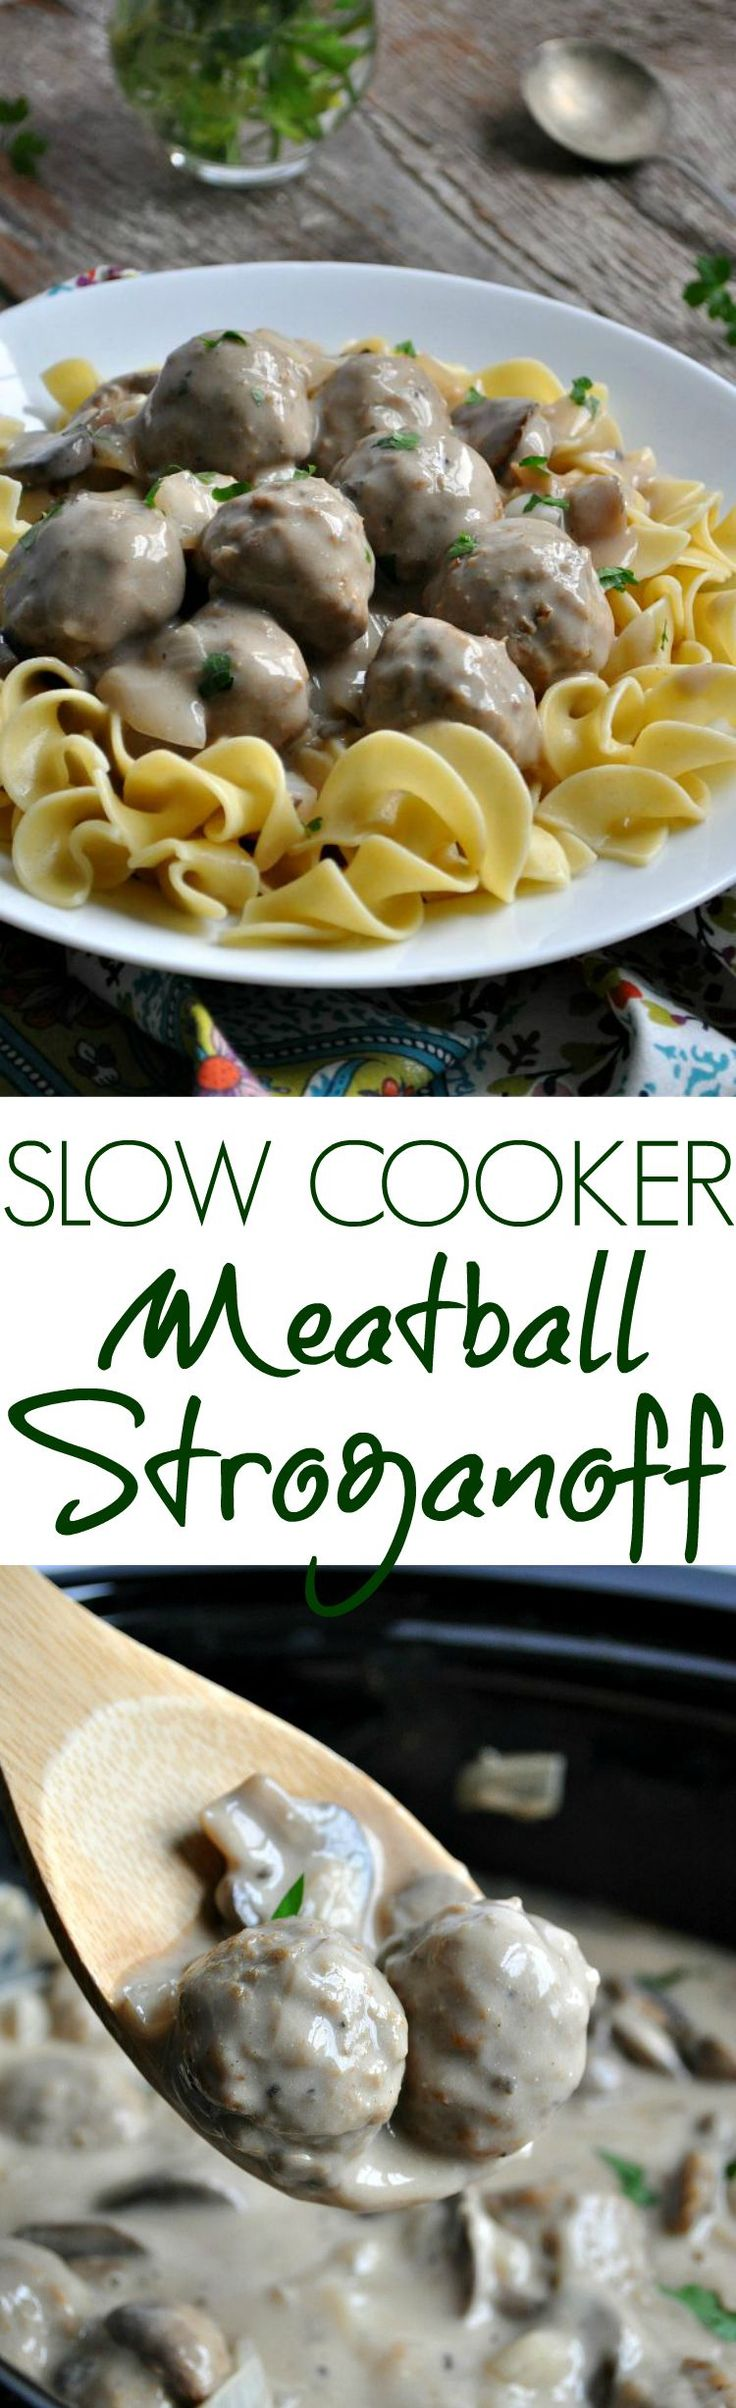 Slow Cooker Meatball Stroganoff is an easy dump-and-go dinner! Just add the ingredients to your Crock Pot and come home to a delicious meal!